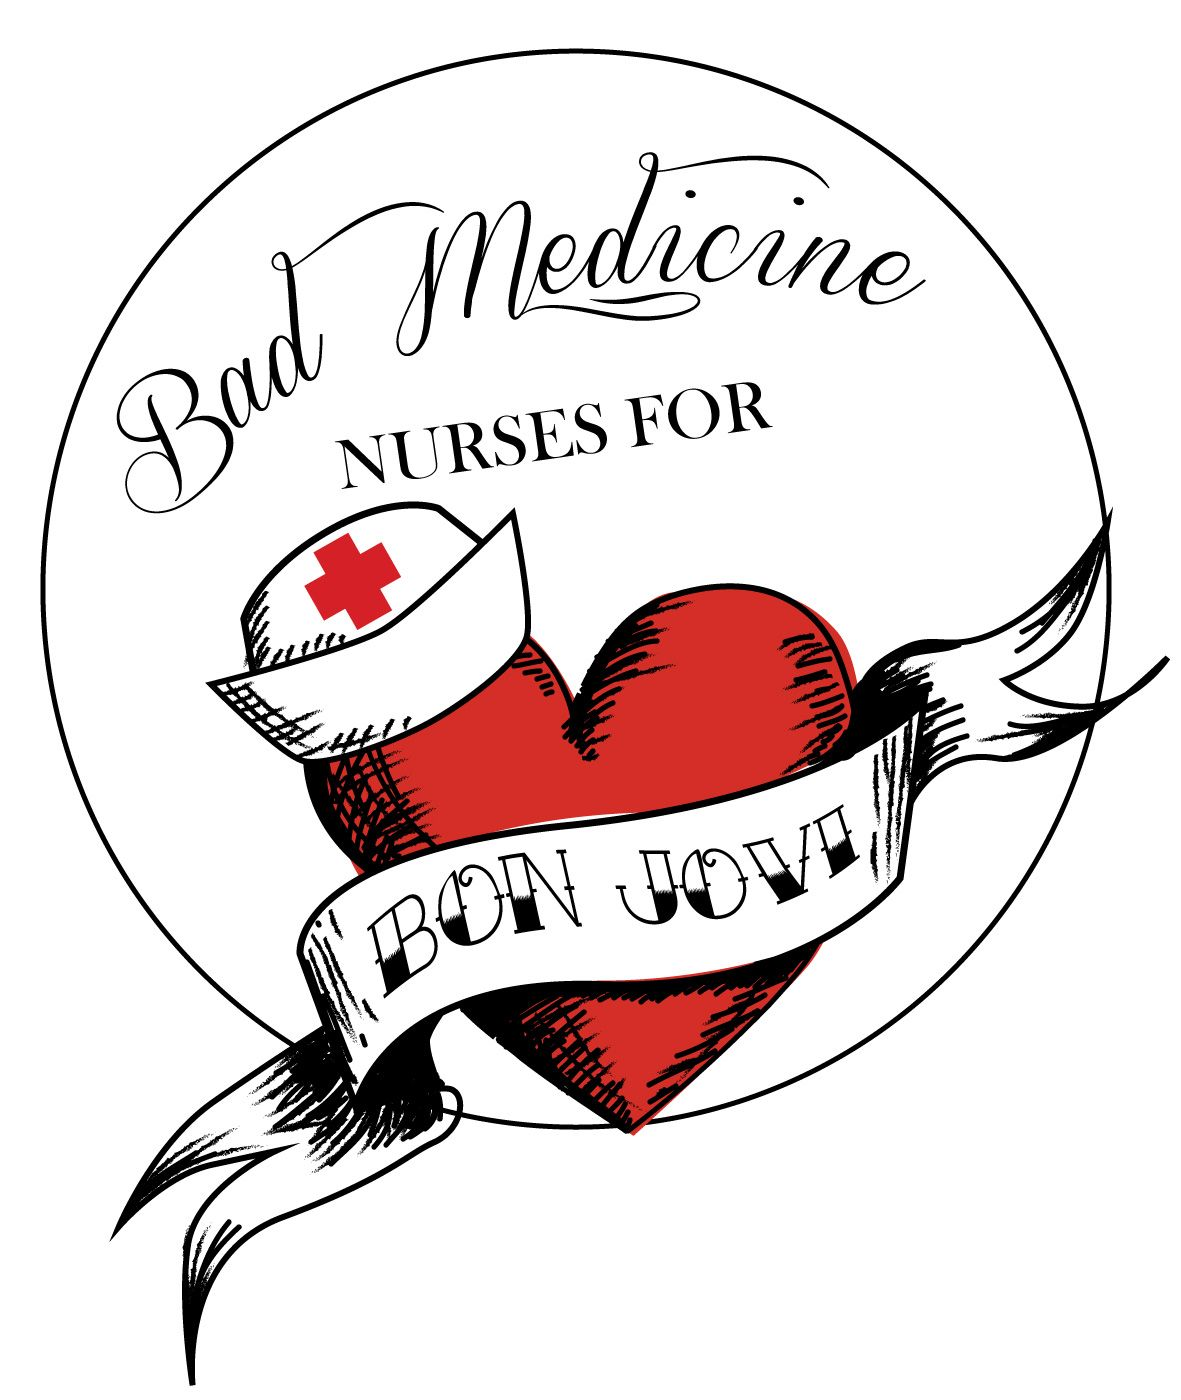 Mermaid's Log: Nurses for Bon Jovi tshirt design,